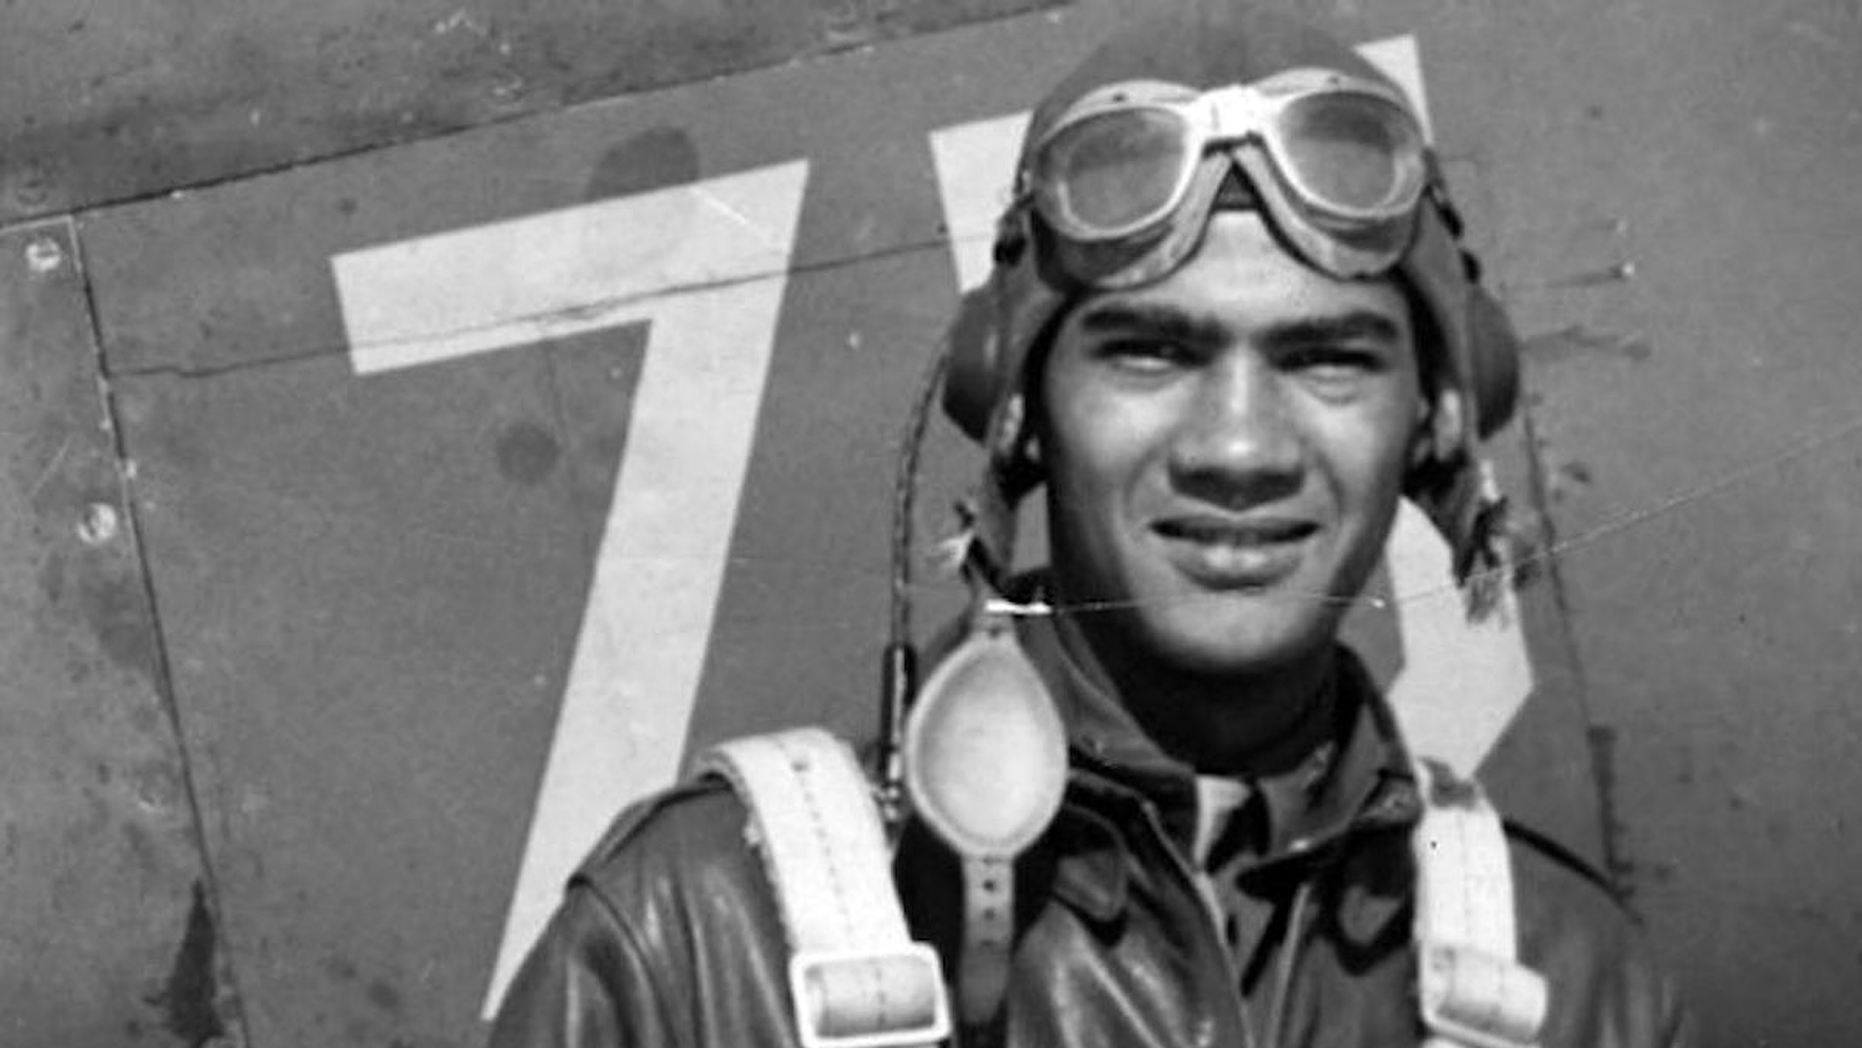 Lawrence Dickson, seen here in an undated photo, is the first of the 27 Tuskegee Airmen still listed as missing in action whose remains the Pentagon has identified. (Defense POW/MIA Accounting Agency via AP)